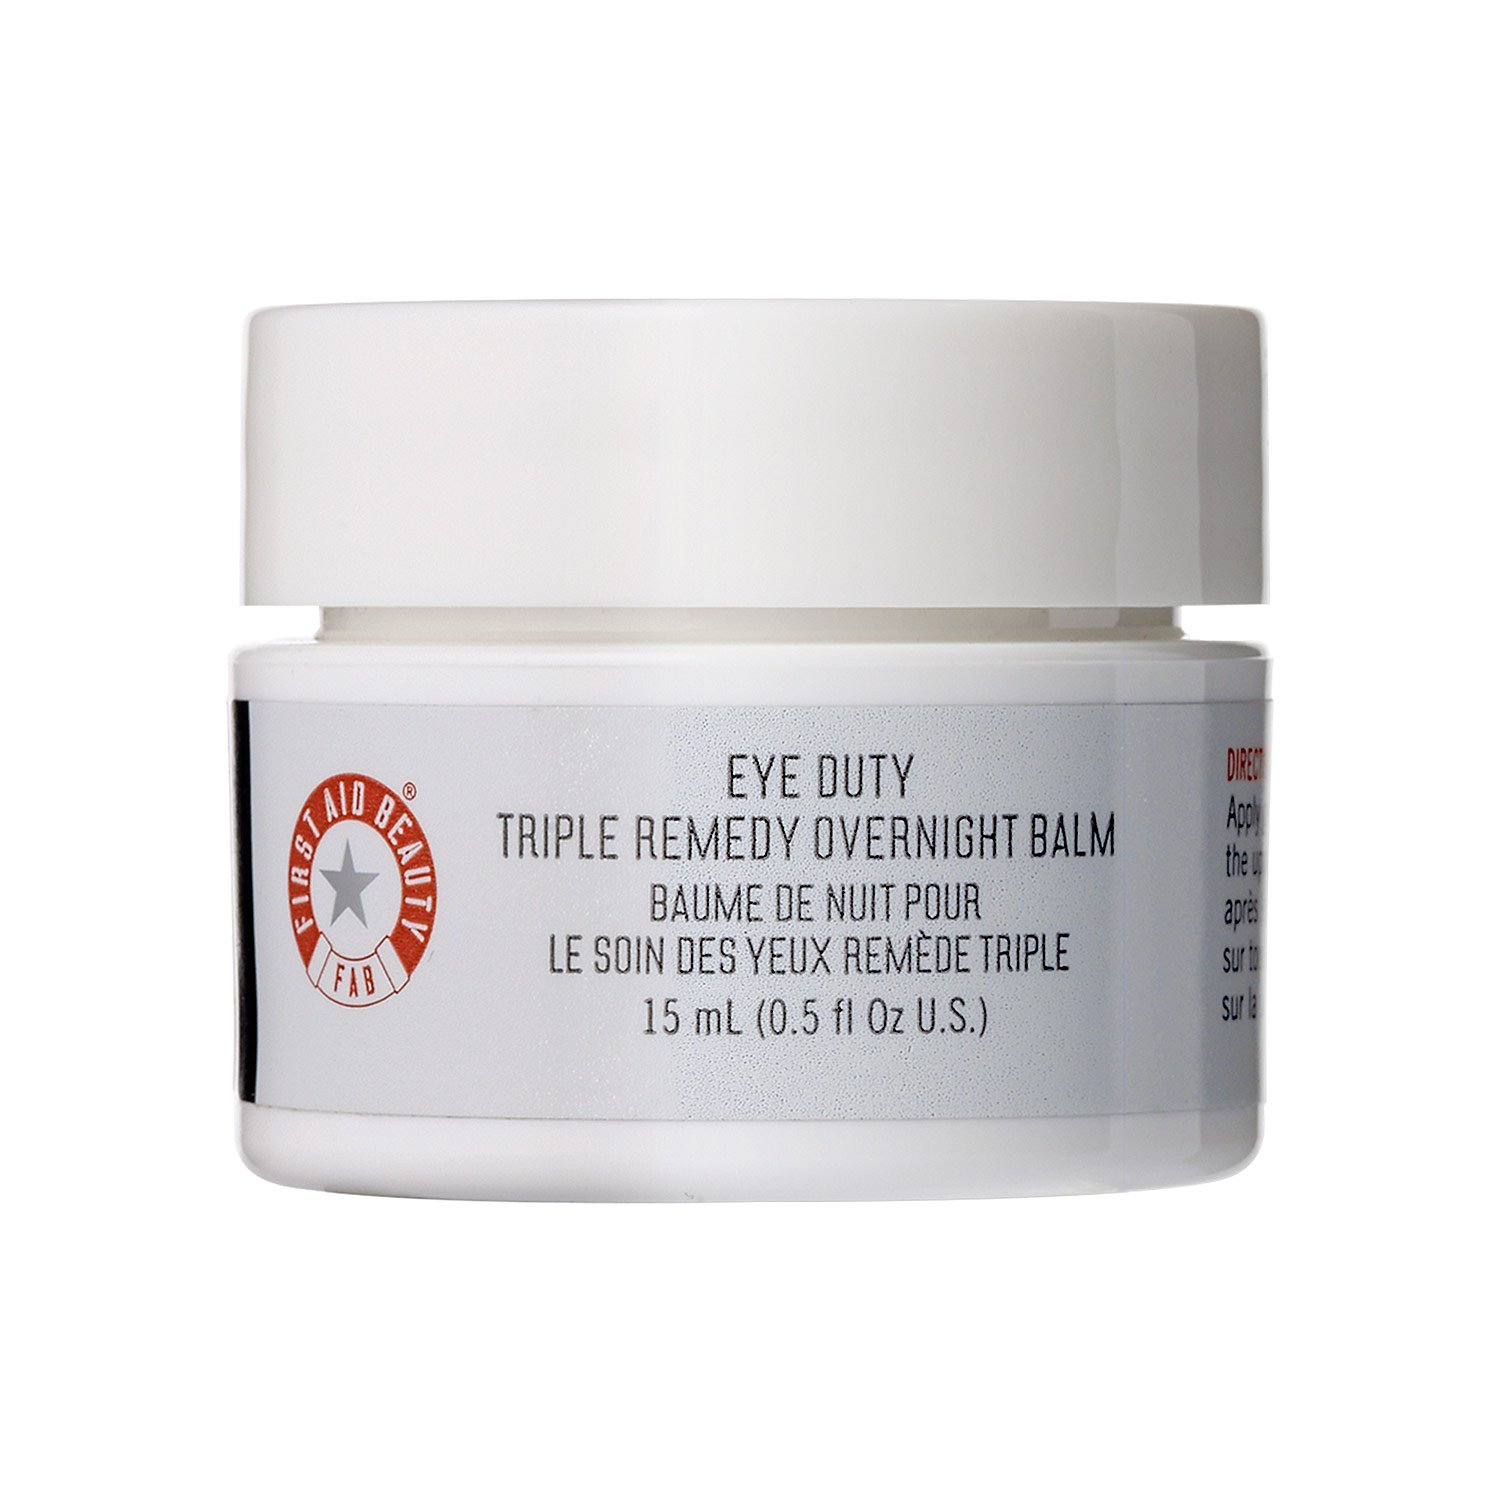 First Aid Beauty Eye Duty Triple Remedy Overnight Balm, 0.5 fl. oz. 432UK